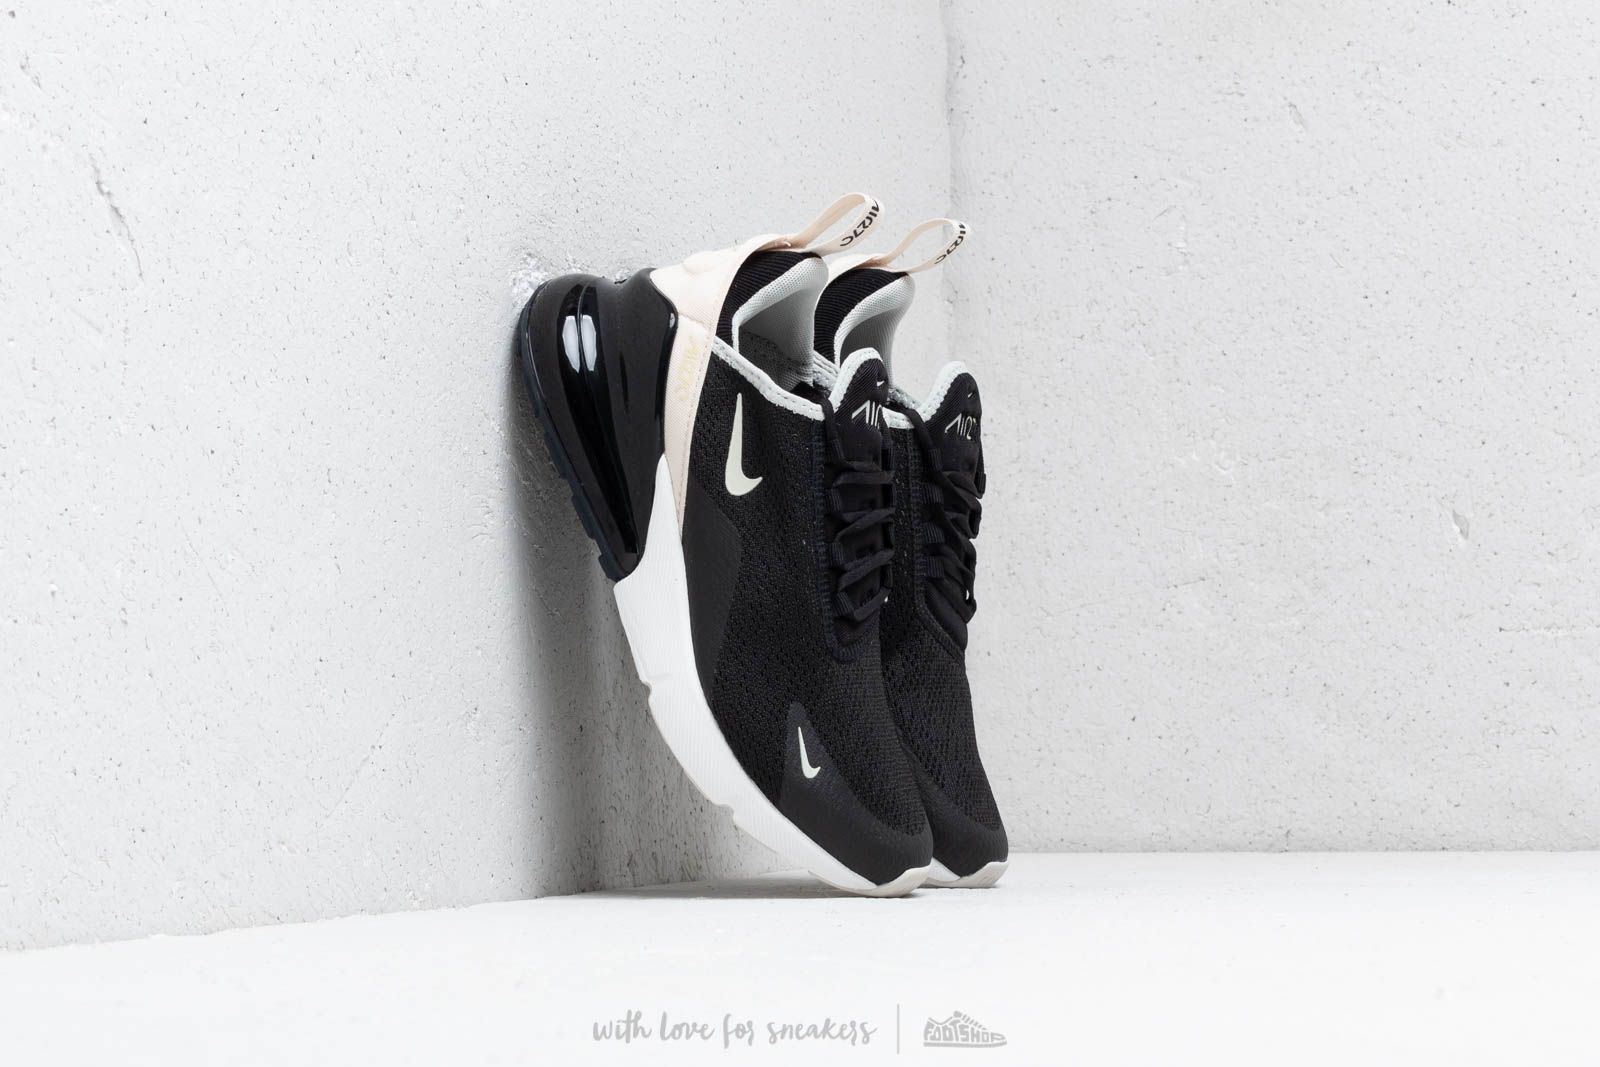 Nike W Air Max 270 Black/ Light Bone-Light Bone a prezzo eccezionale 142 € acquistate su Footshop.it